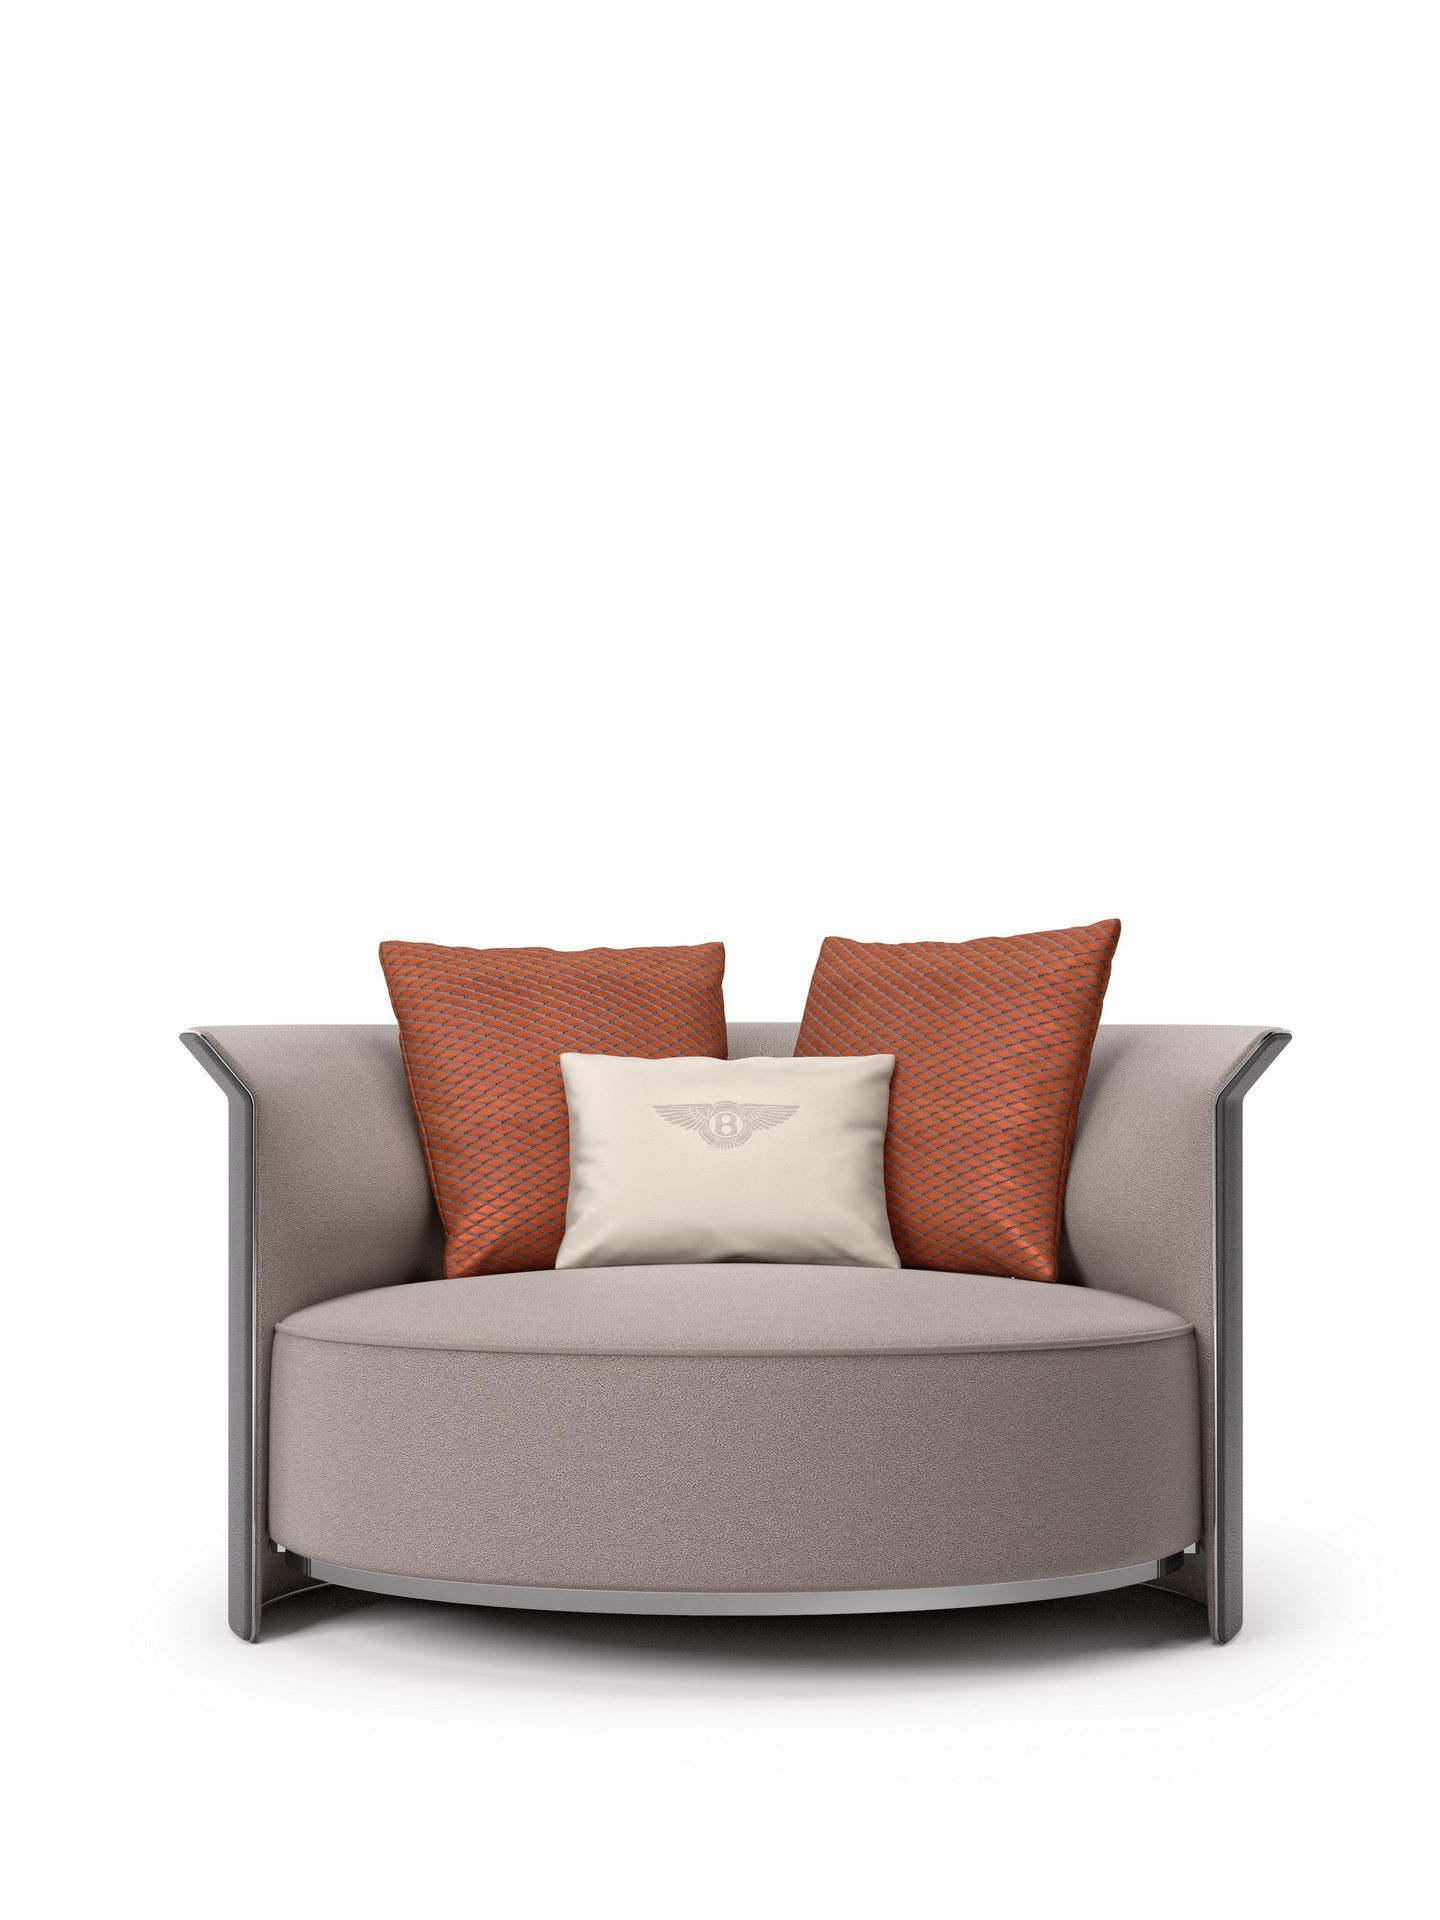 Bentley-Home-Collection-Ramsey-loveseat-11_2